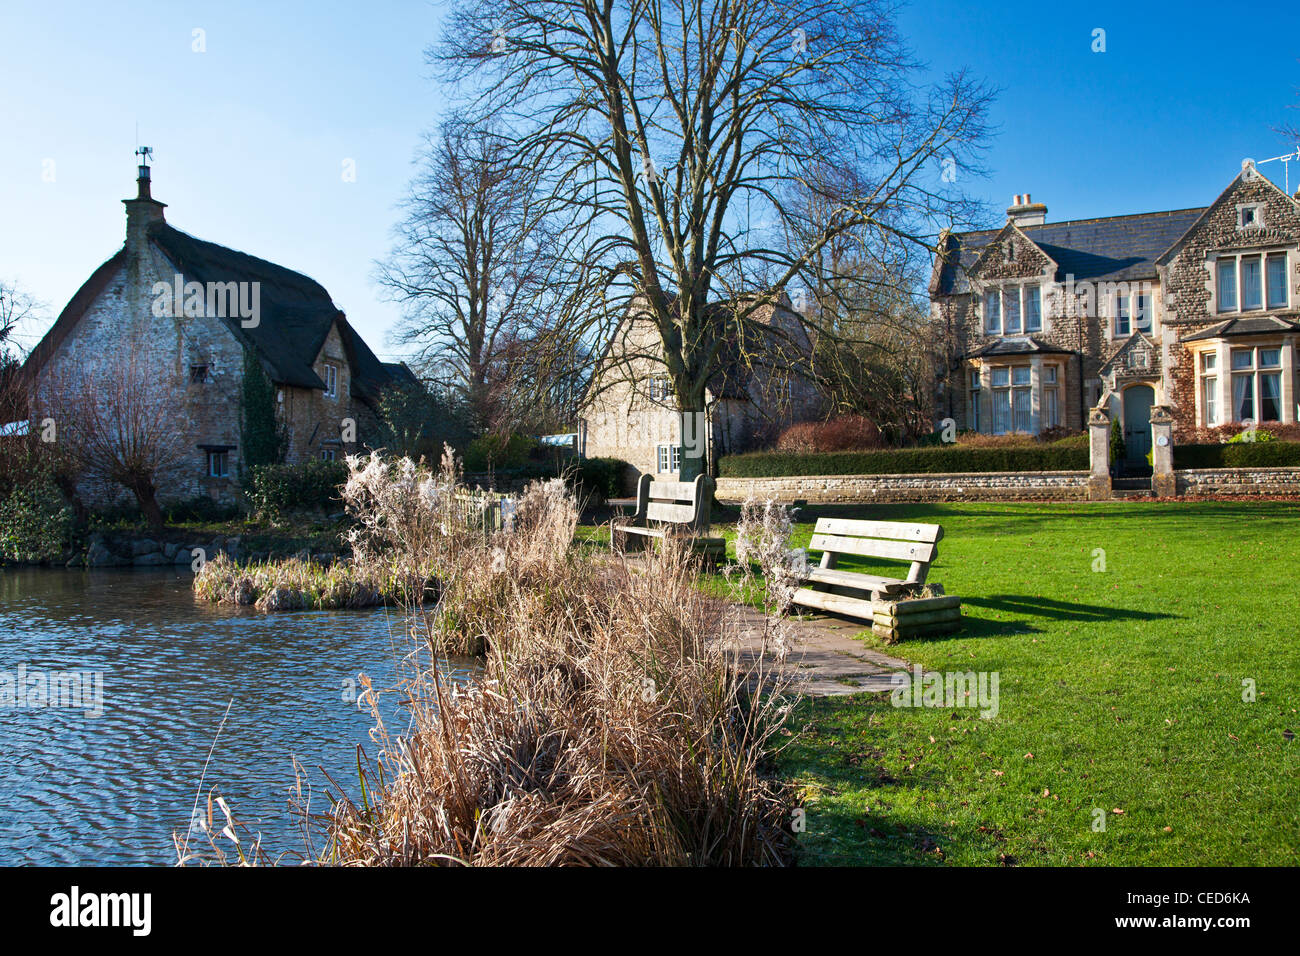 Houses Around A Typical English Village Duck Pond On The